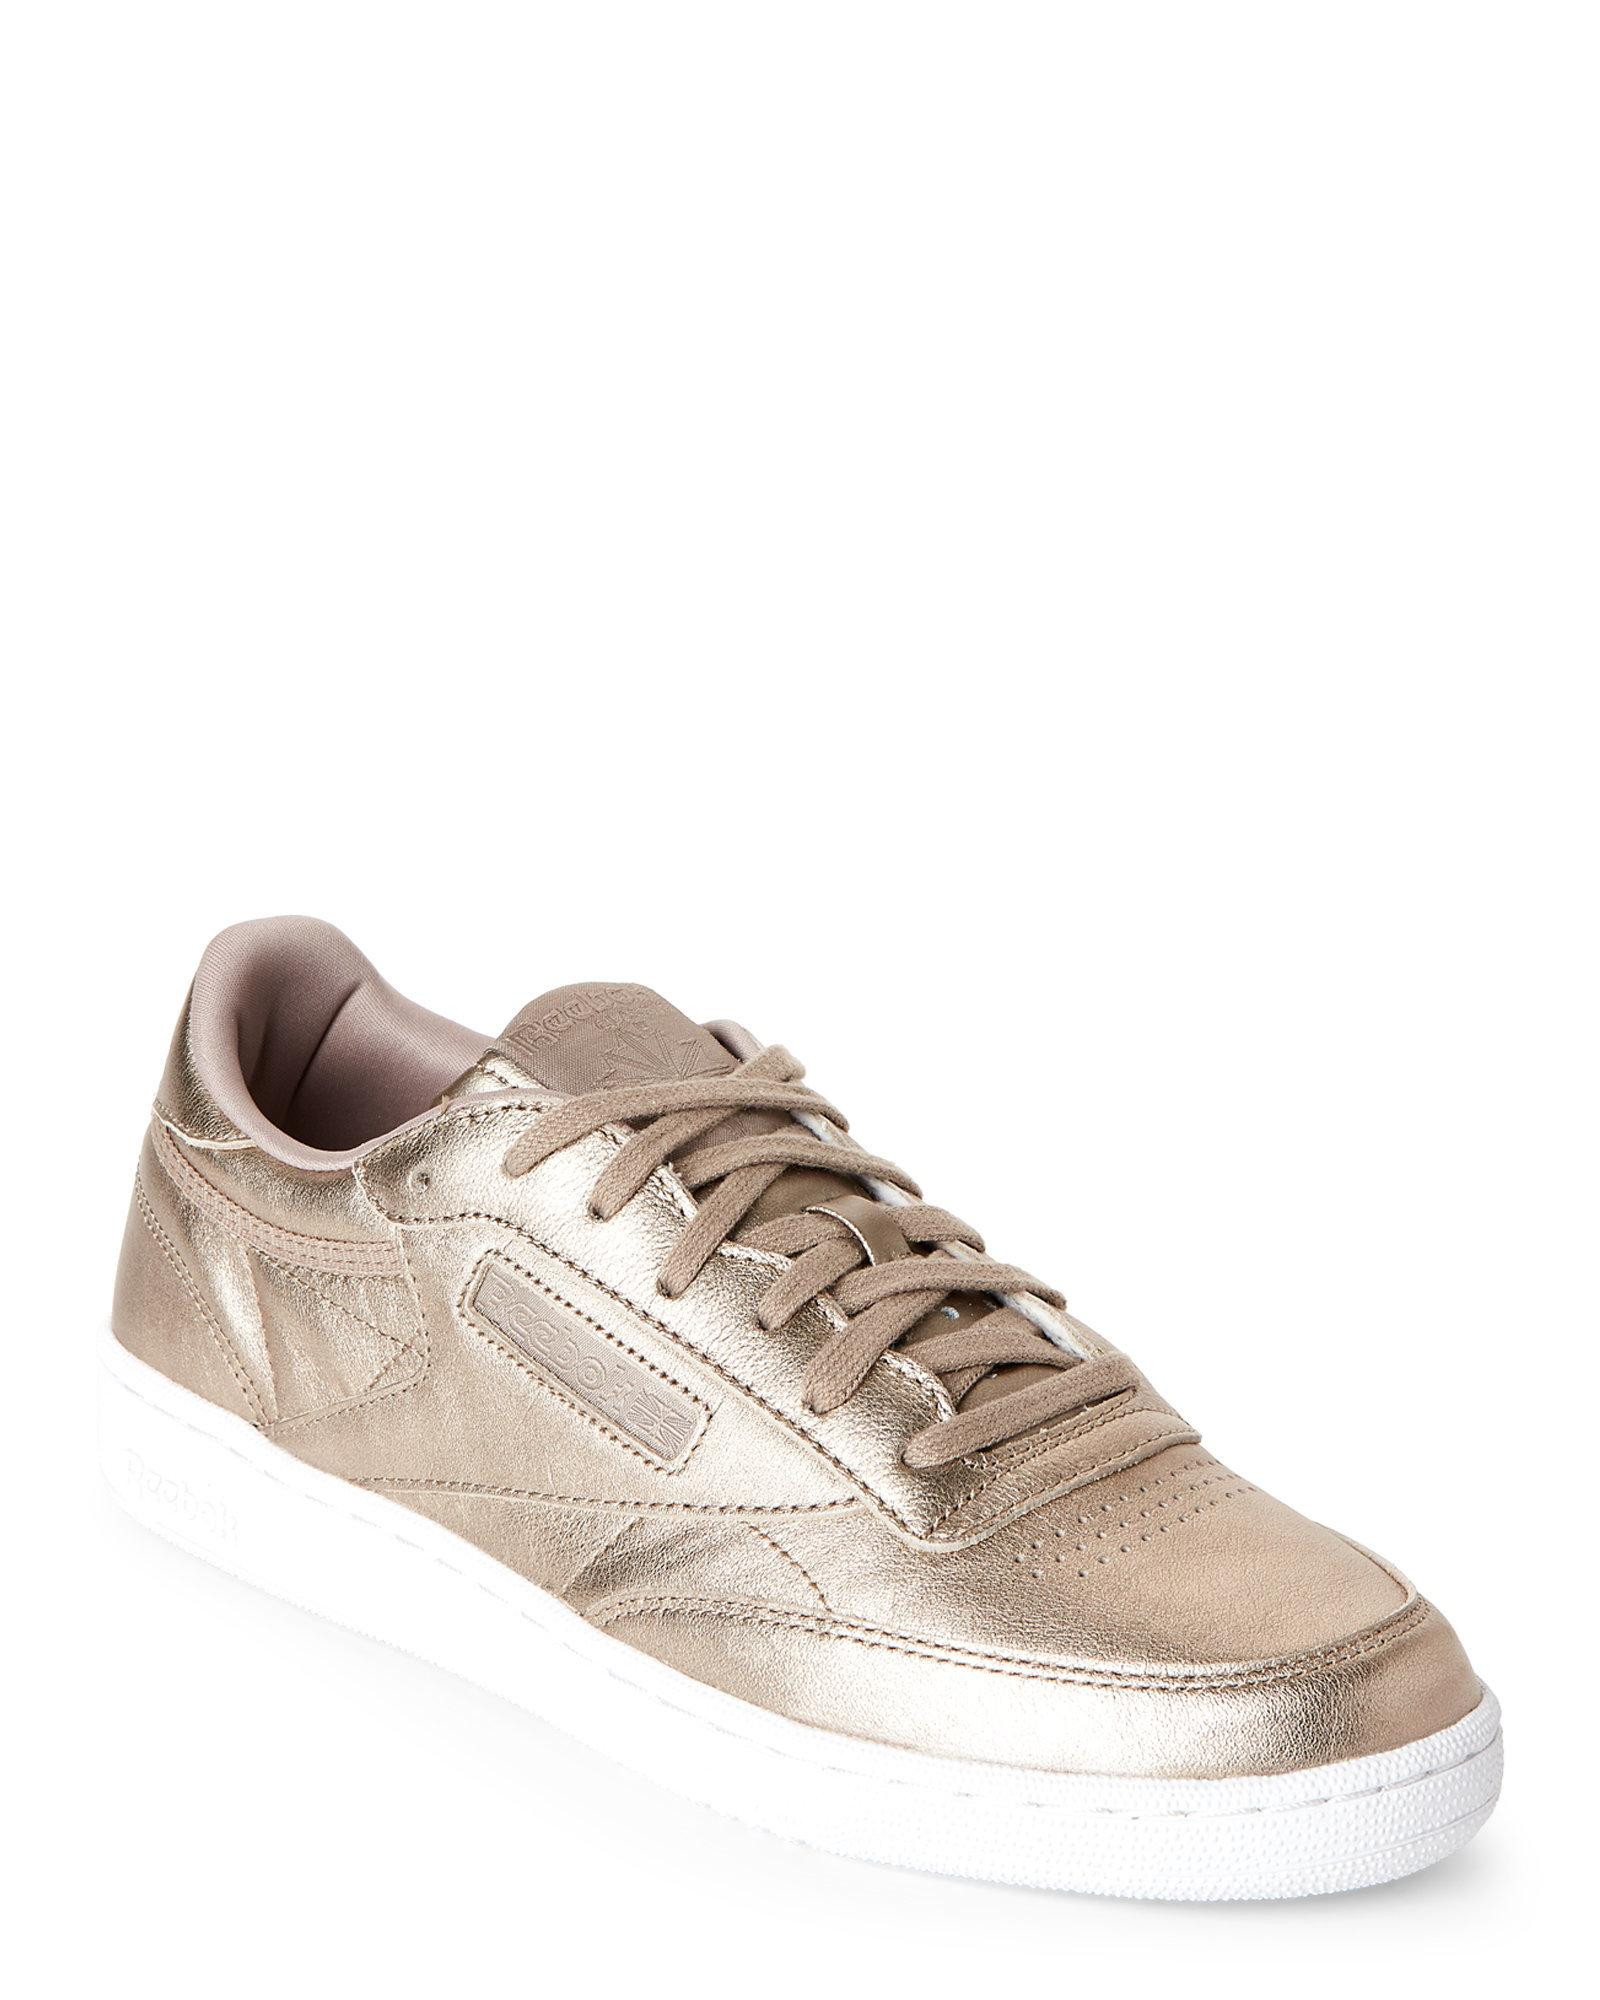 CLUB C 85 GOLDEN NEU - FOOTWEAR - Low-tops & sneakers Reebok KnfI1